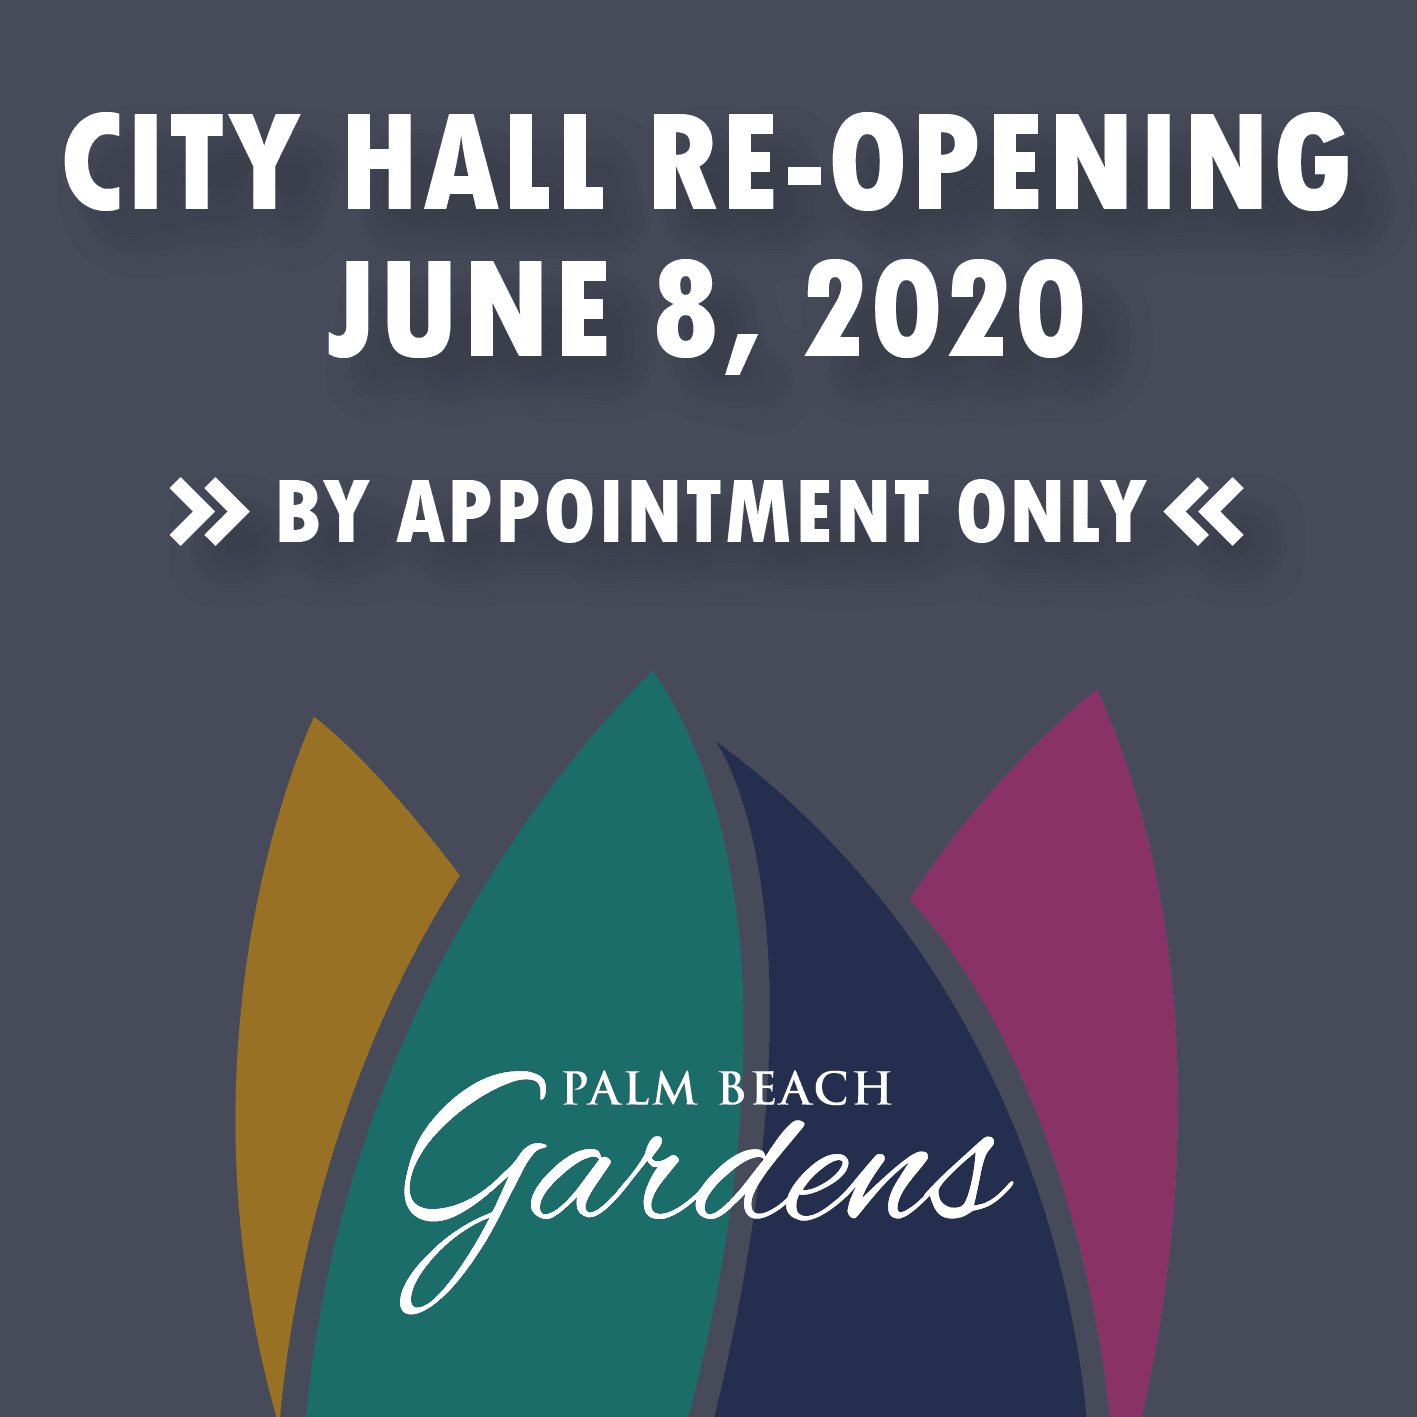 City Hall Re-opening